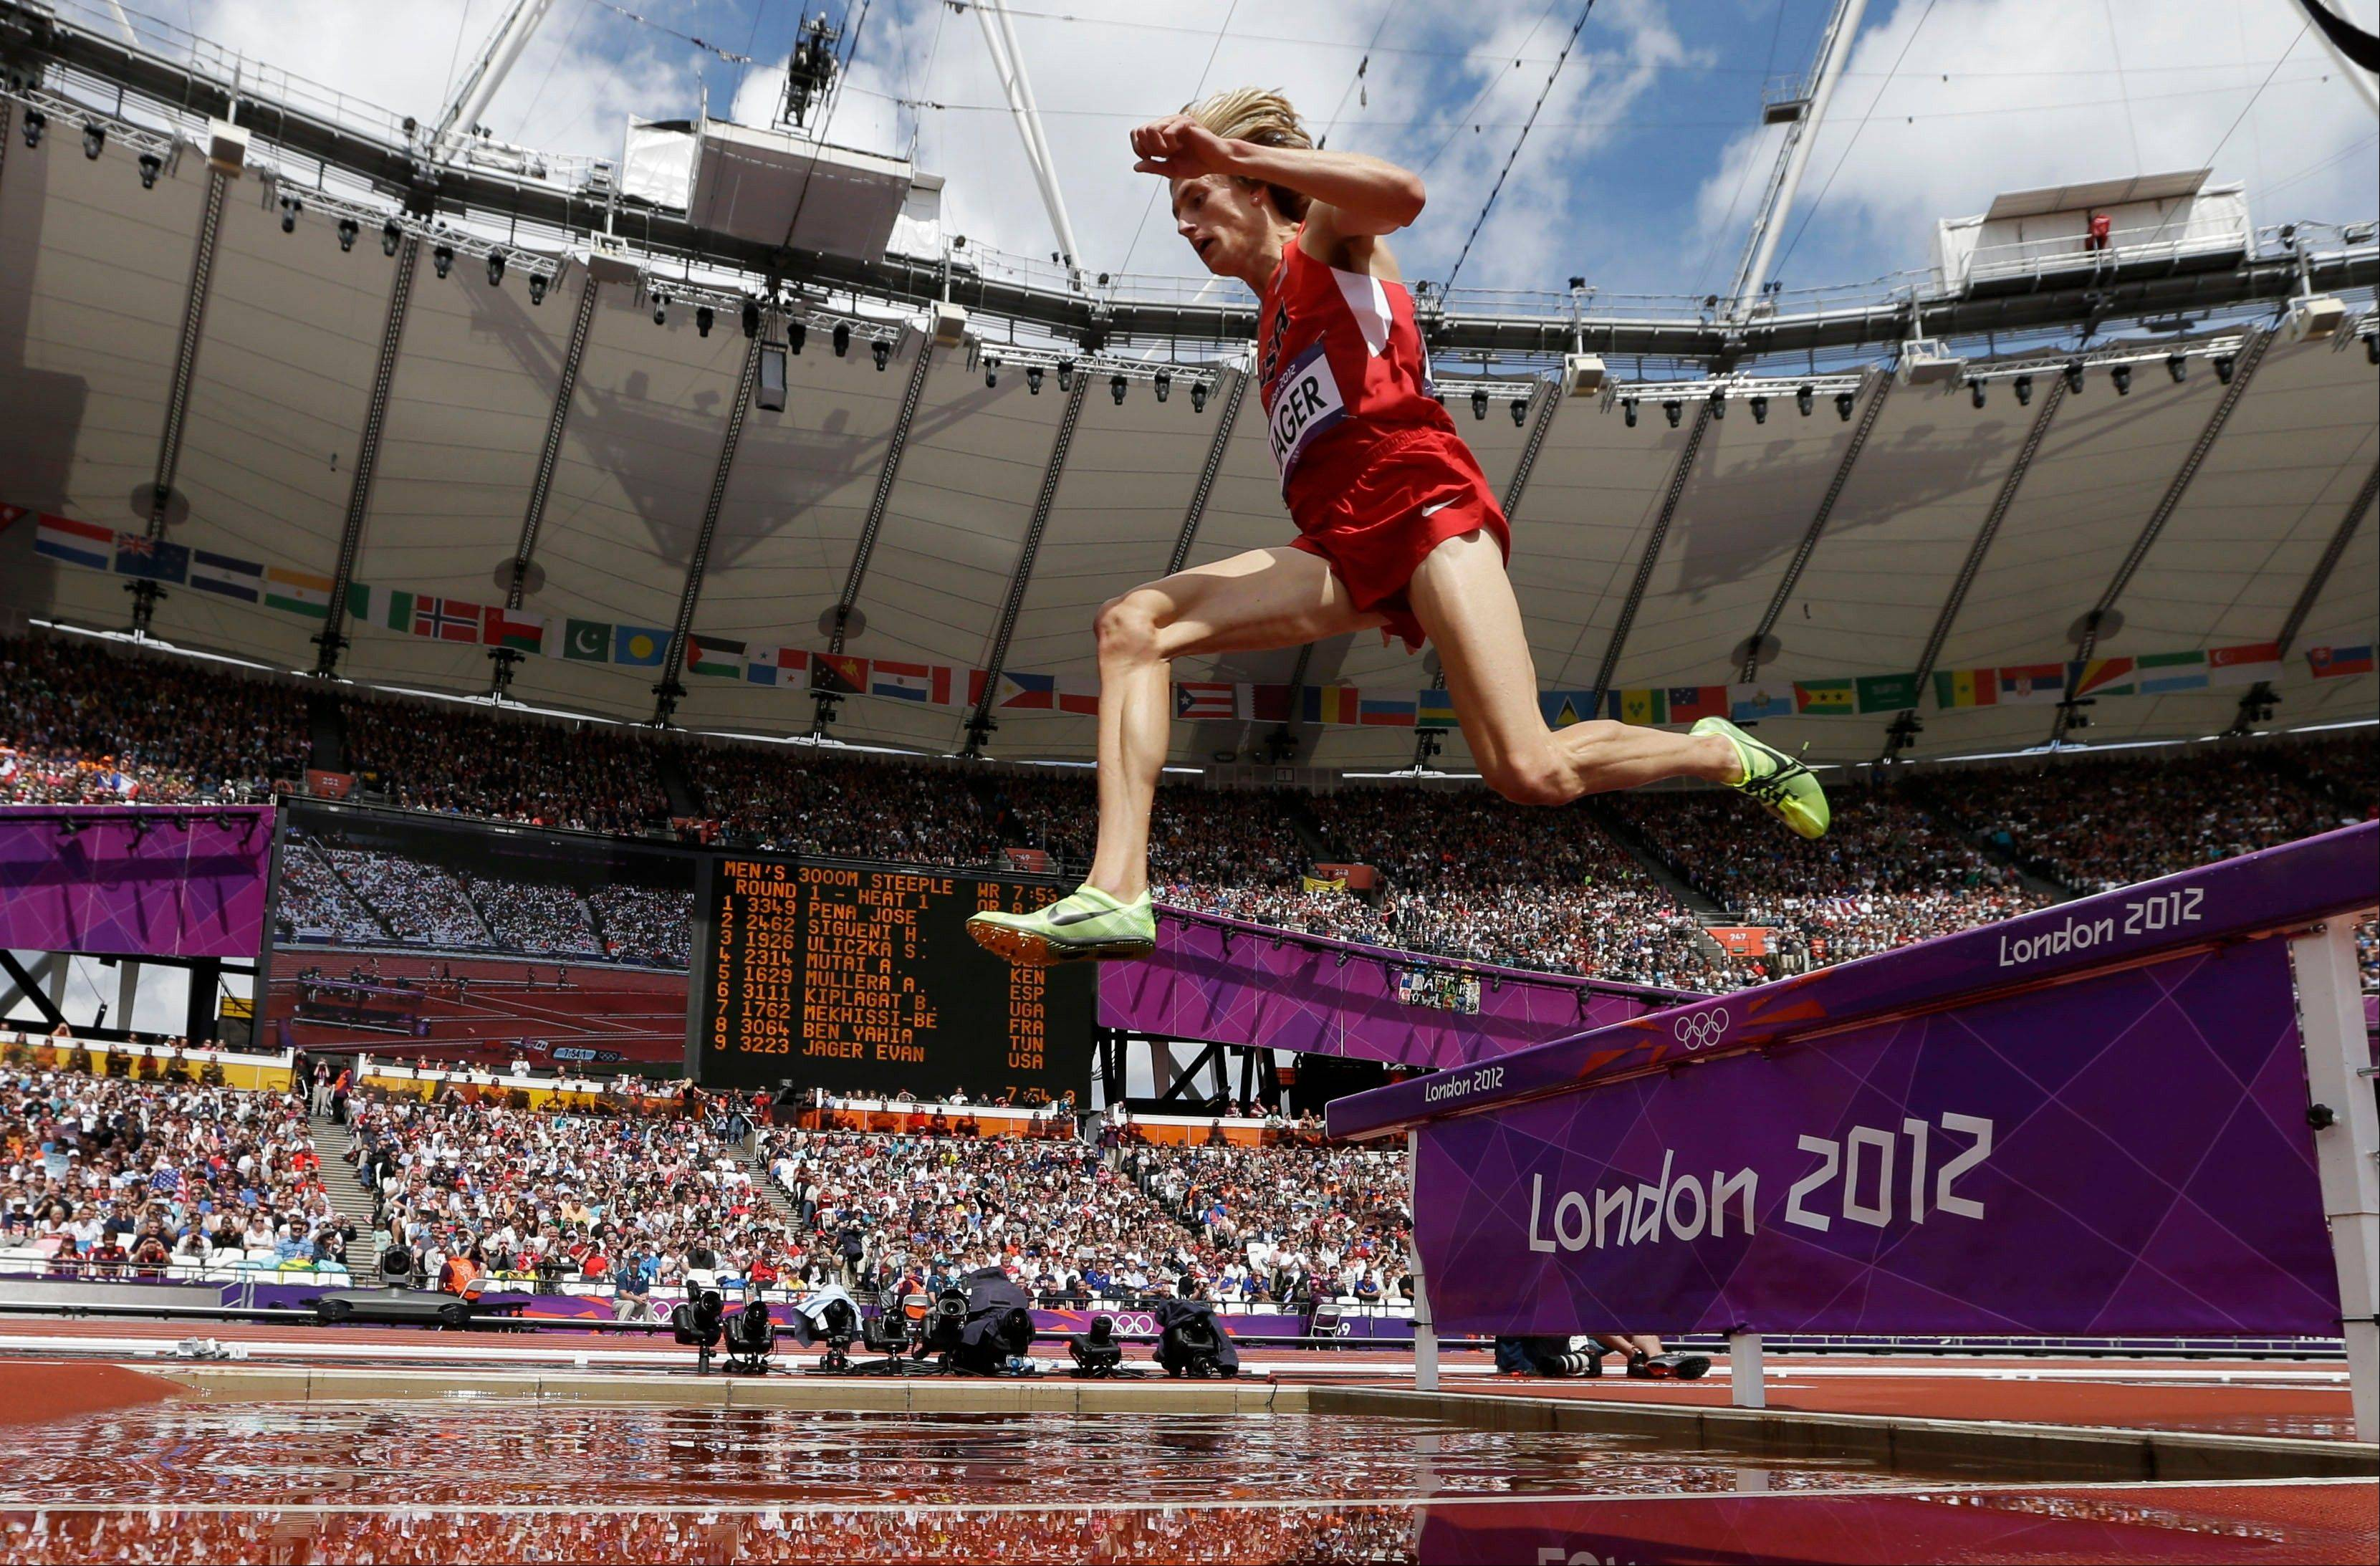 United States� Evan Jager competes in a men�s 3000-meter steeplechase heat during the athletics in the Olympic Stadium at the 2012 Summer Olympics, London, Friday, Aug. 3, 2012.